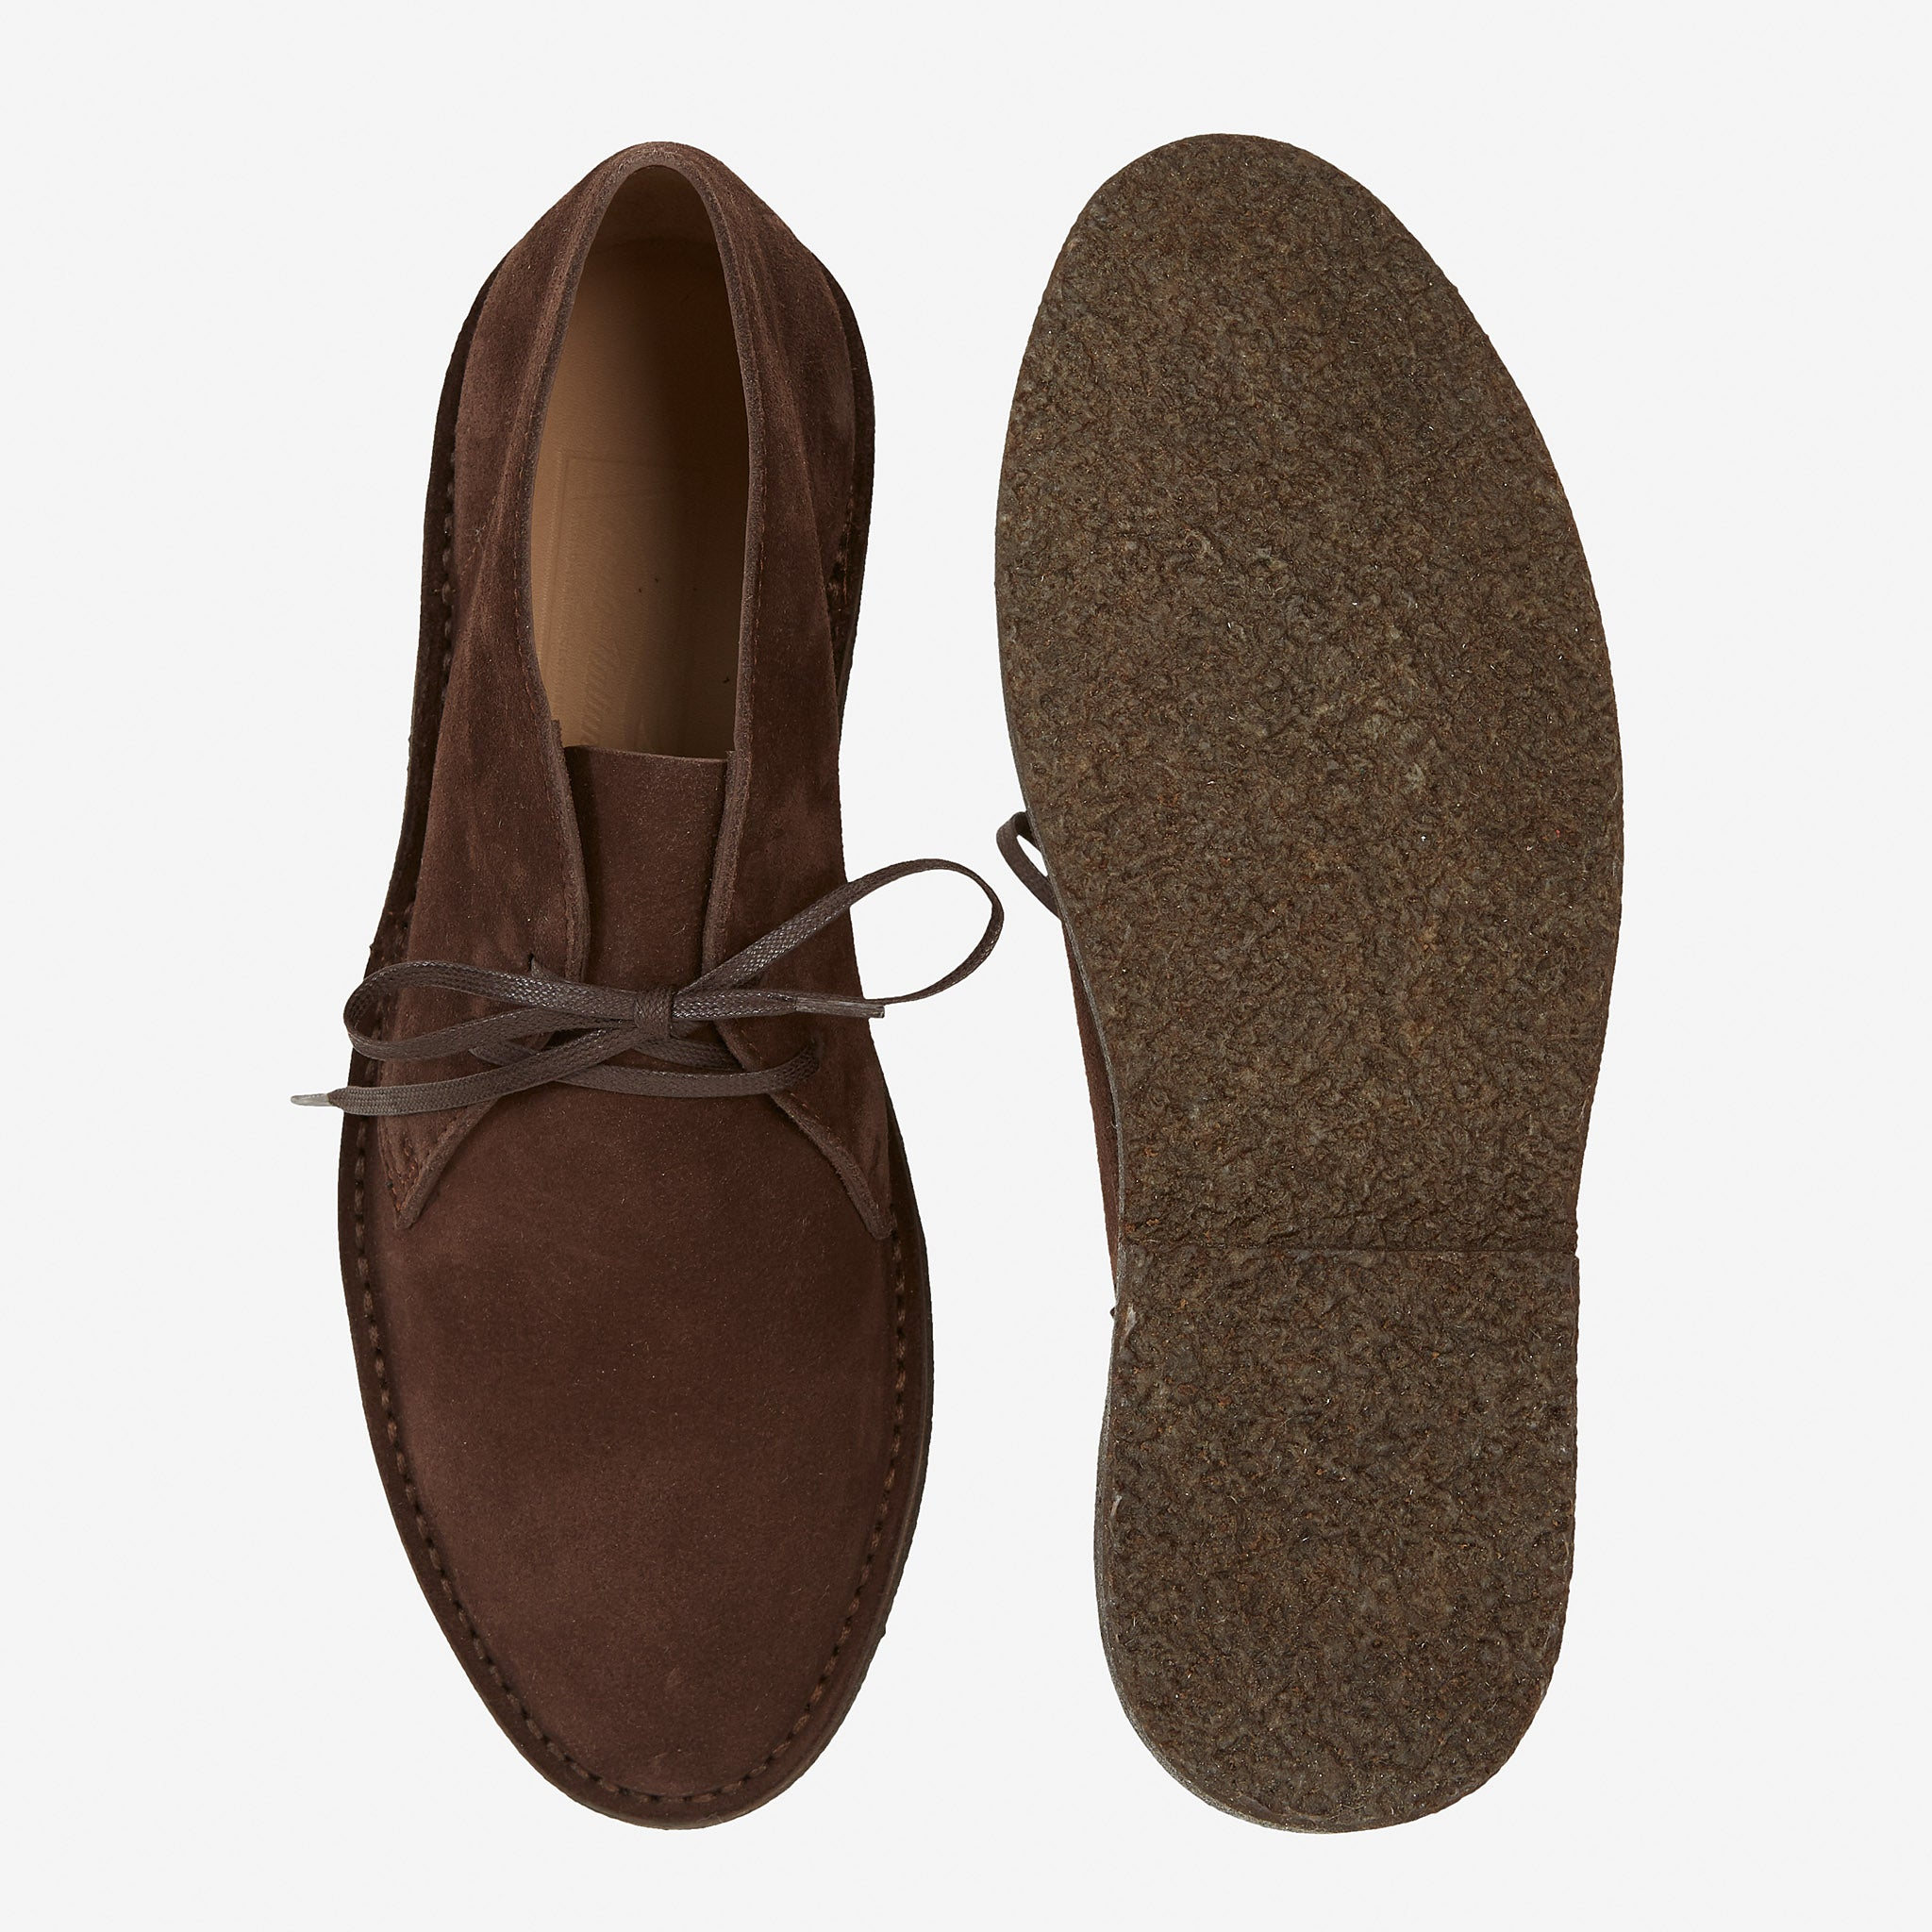 Desert Boot Crepe Sole Chocolate Suede